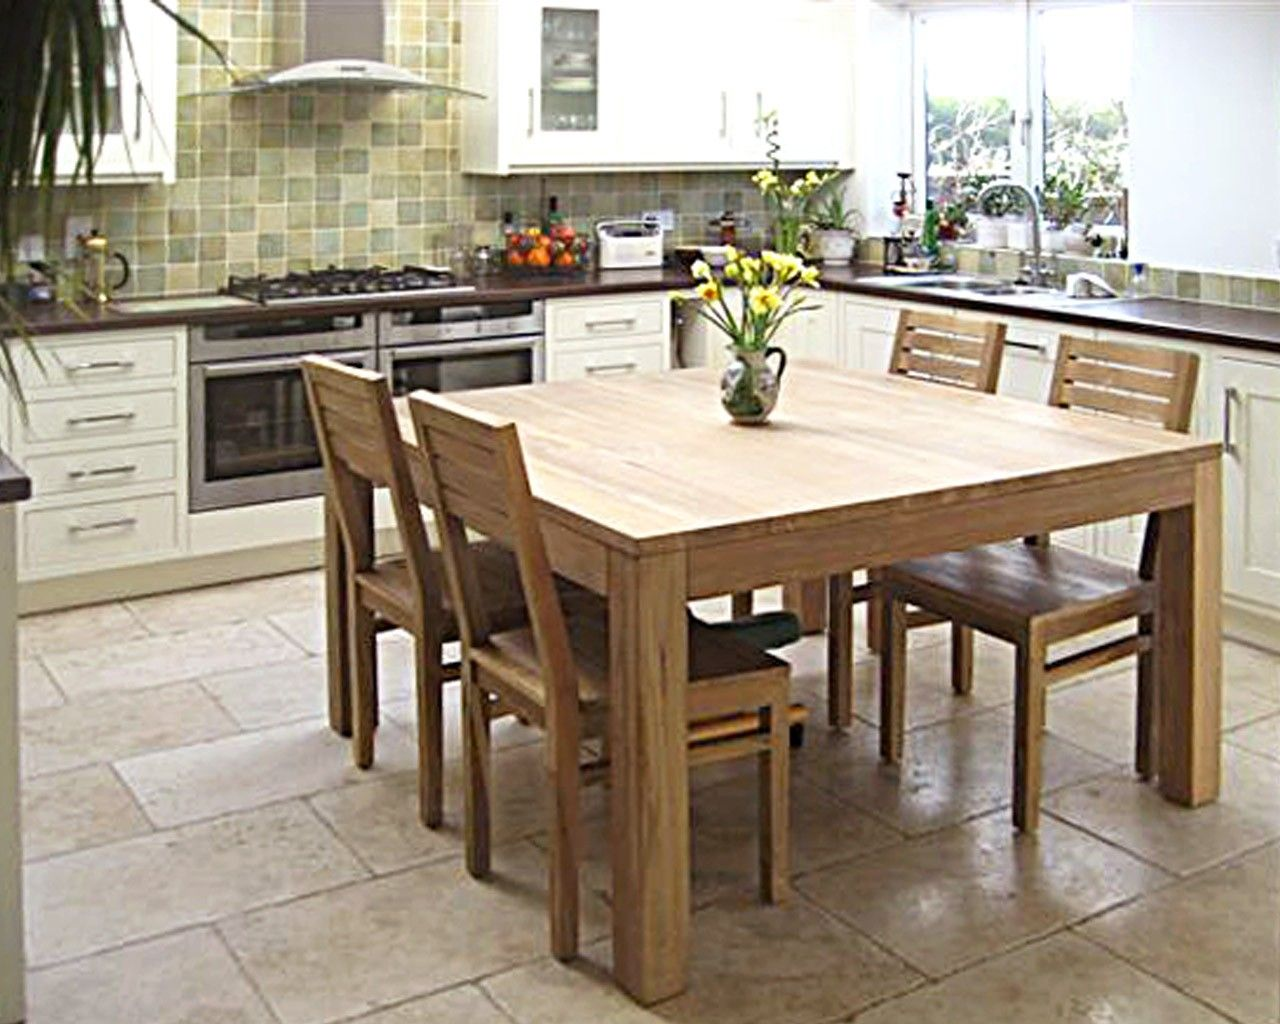 Simple dining room design and kitchen - Classic Dining Furniture Small Kitchen Design Square Dining Tables In 14 Top Rated Dining Room Kitchen Tables